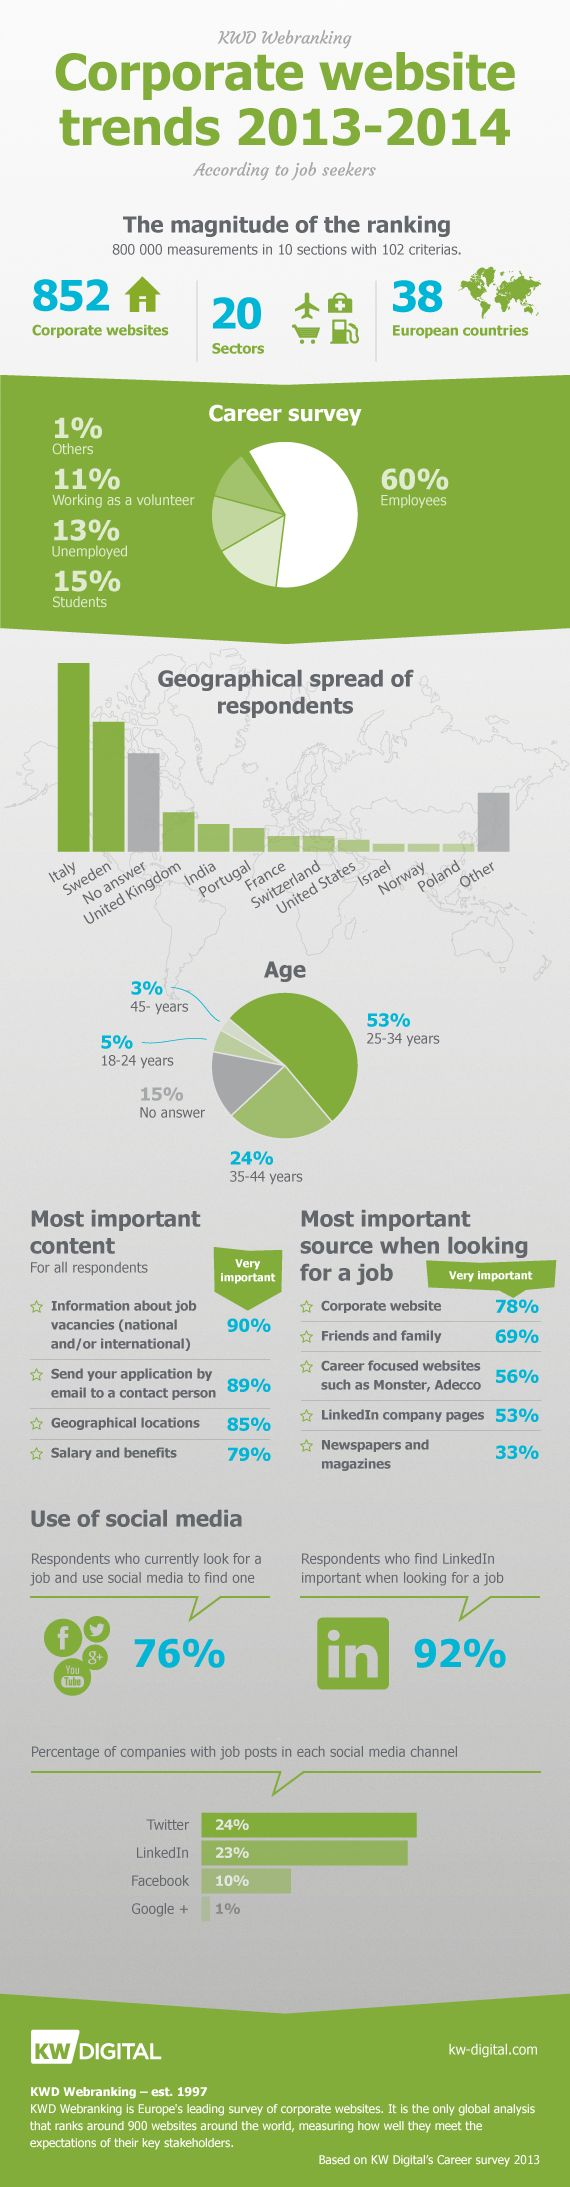 Corporate website trends according to jobseekers in KW Digital's Career survey 2013 (KWD Webranking 2013-2014)